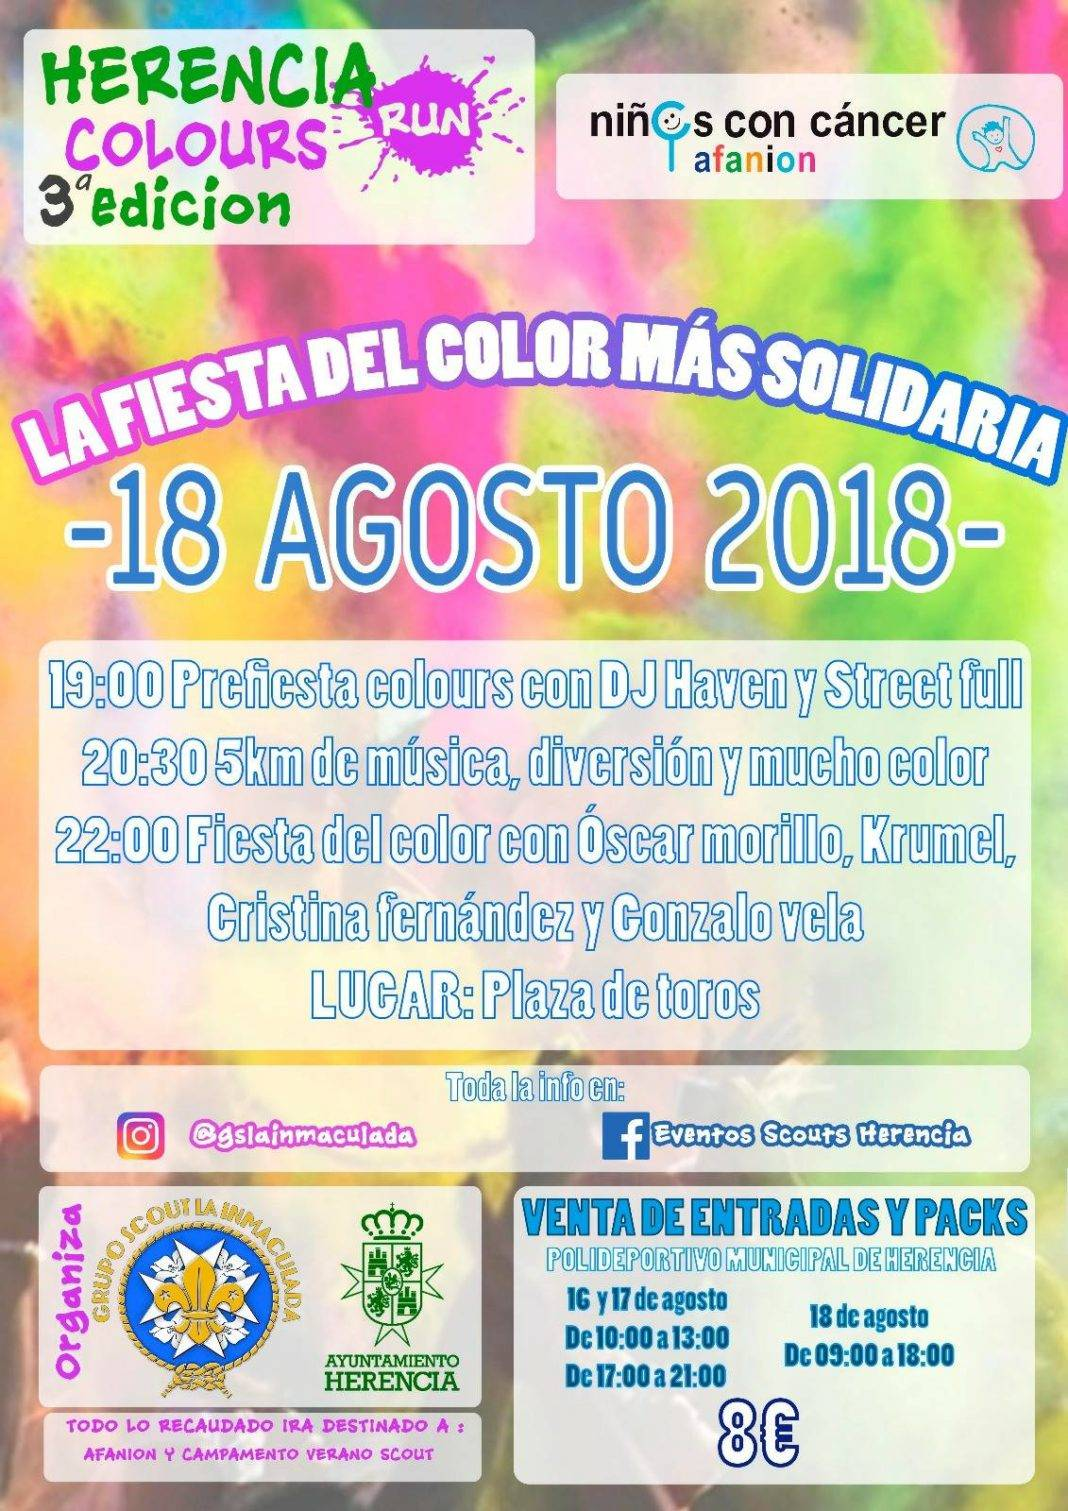 III Herencia Colours Run, la fiesta del color más solidaria 3